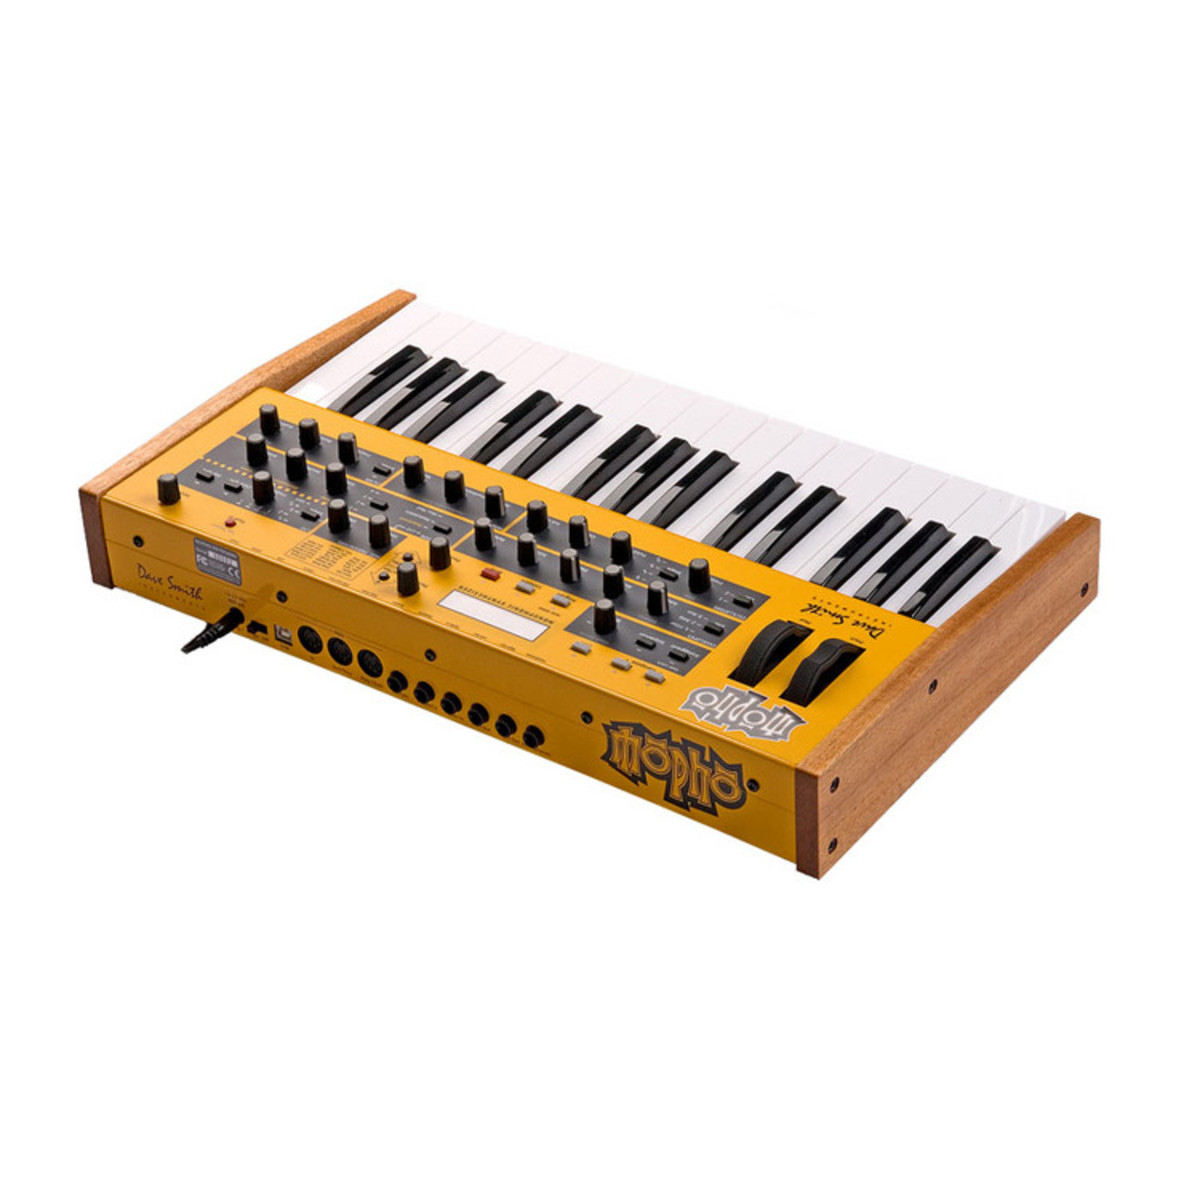 dave smith instruments mopho keyboard synthesizer nearly new at gear4music. Black Bedroom Furniture Sets. Home Design Ideas